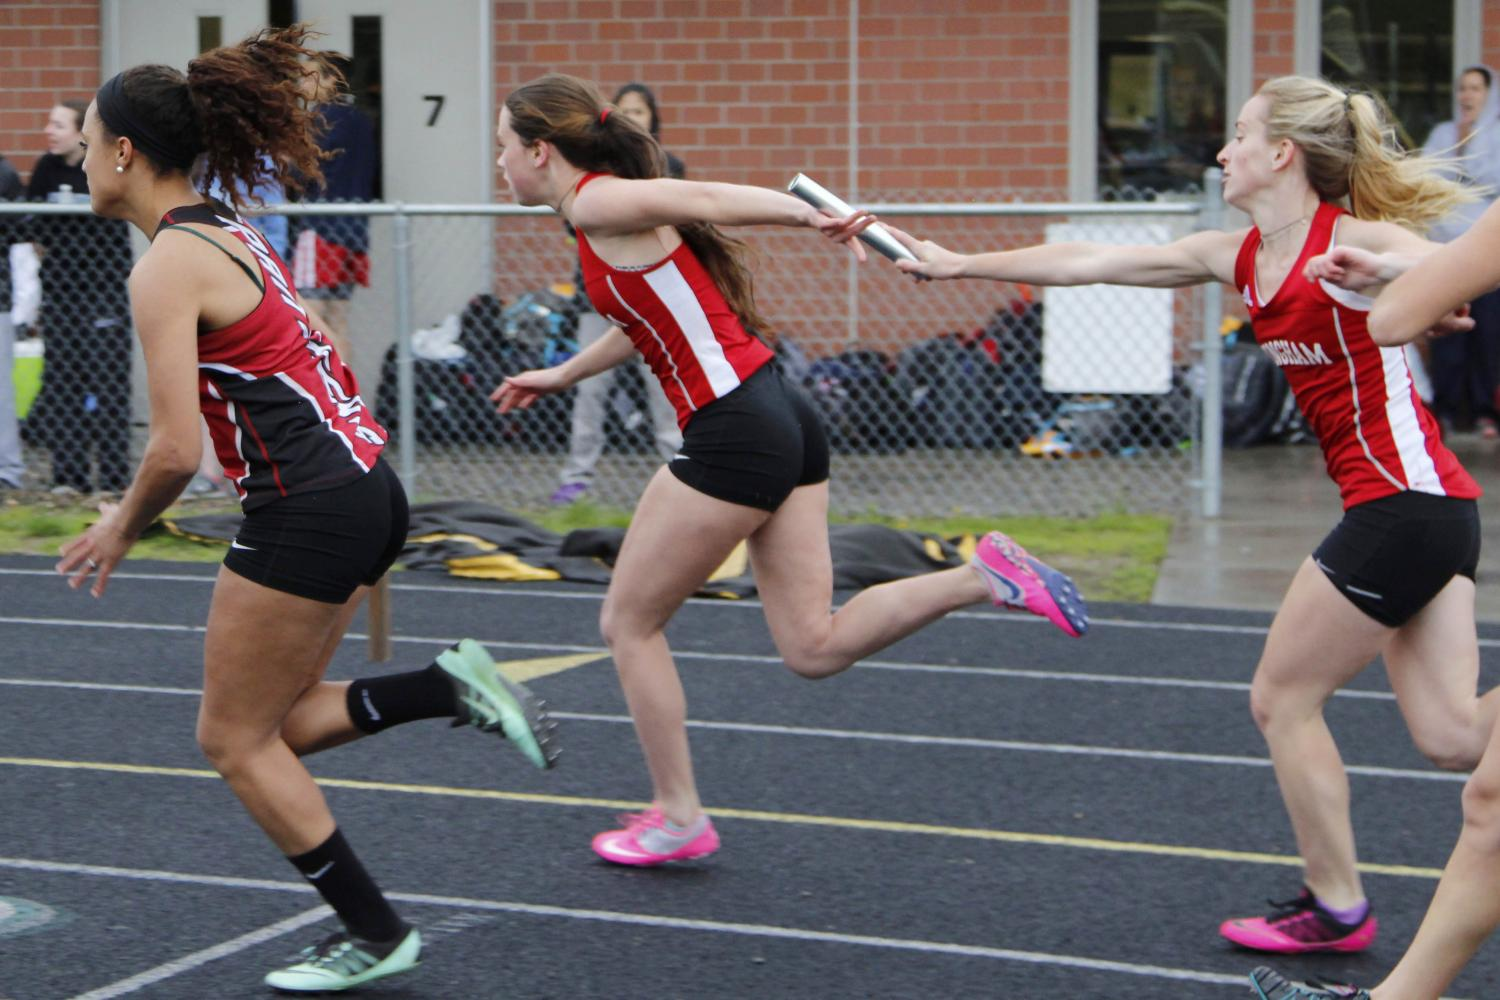 Captain+Mary+Kate+Brennan+receives+the+baton+from+Emily+Brazel+in+the+4x100m+relay.